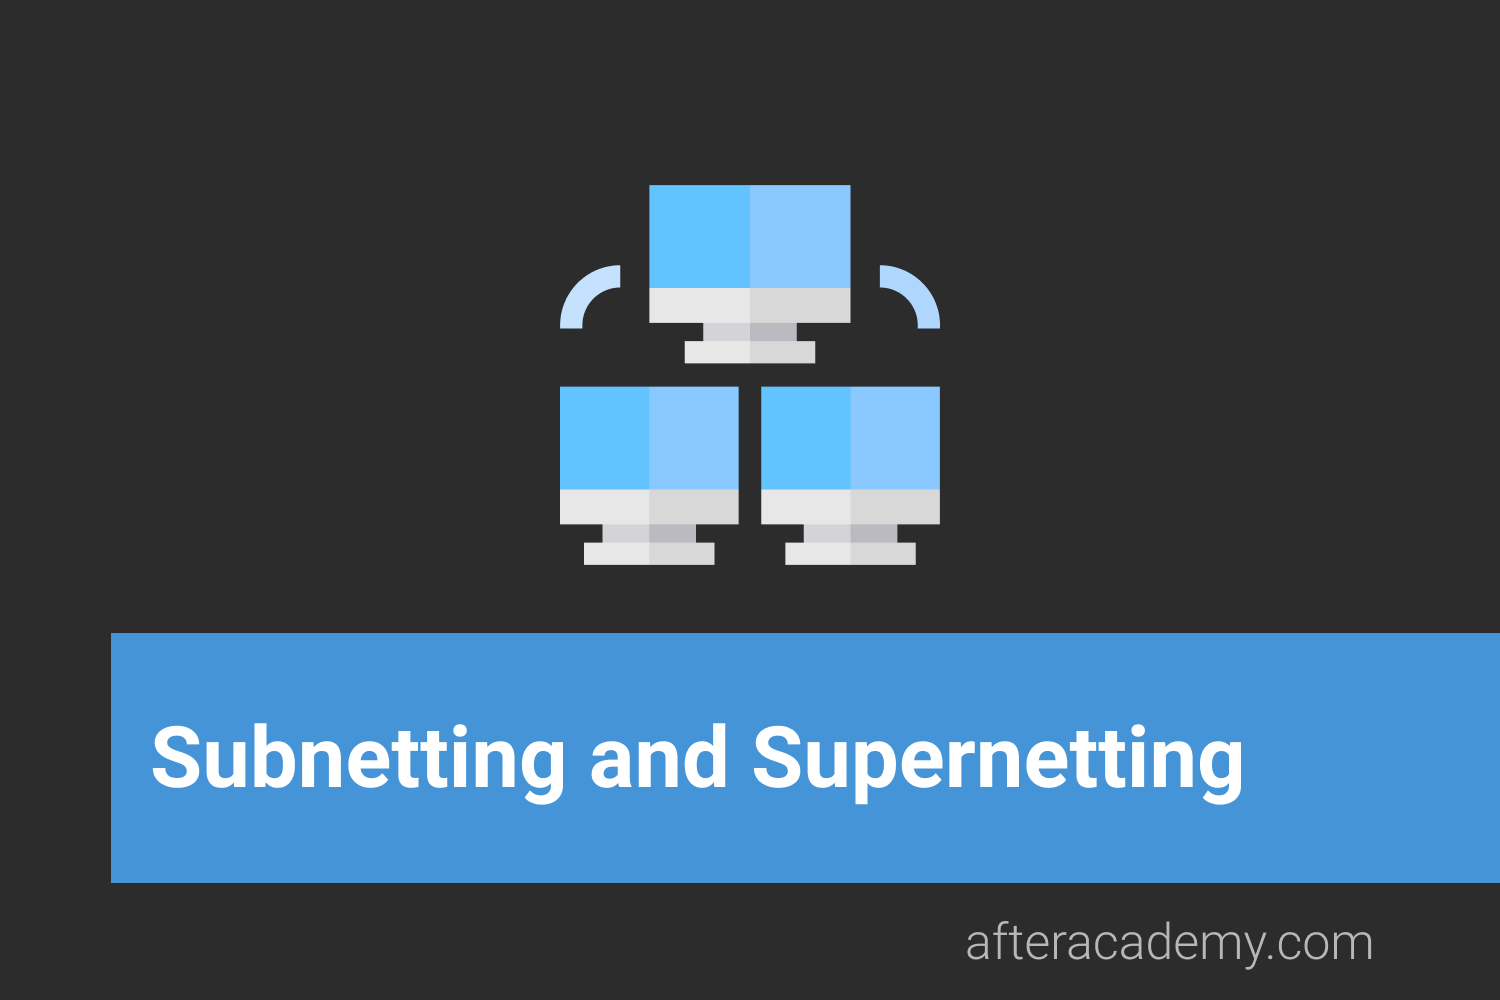 What is the concept of Subnetting and Supernetting?